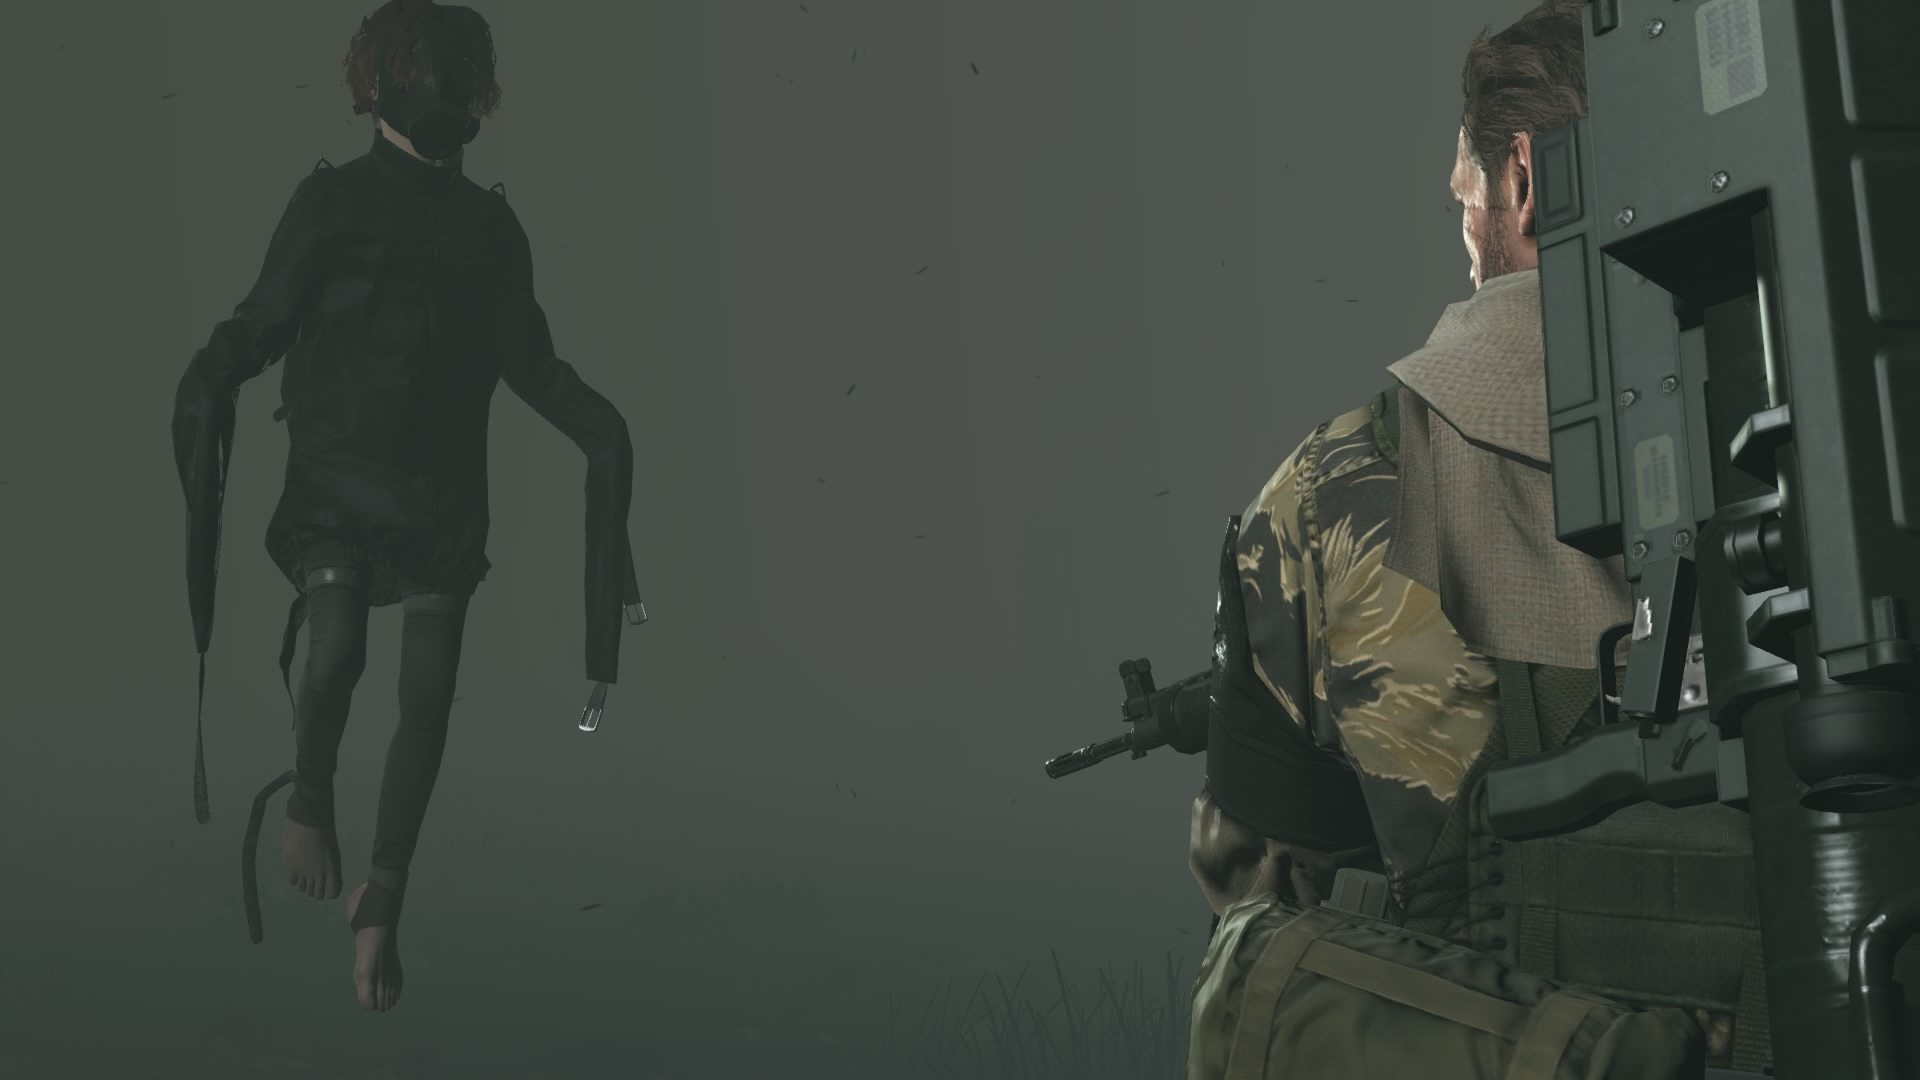 MGS:V. This game disappointed me greatly. I think i deleted it from the hard drive after the credits rolled. But i ended up with some interesting shots. Meet the child version of 'Psycho Mantis.' I can only assume this is who he was suppose to be. It was never explained or even hinted at who this character was exactly. The only information i got out of the game was that the mantis character and the fire dude were apparitions that latch onto individuals with a great desire for revenge and seemed to like hanging out with Metal Gears as well.